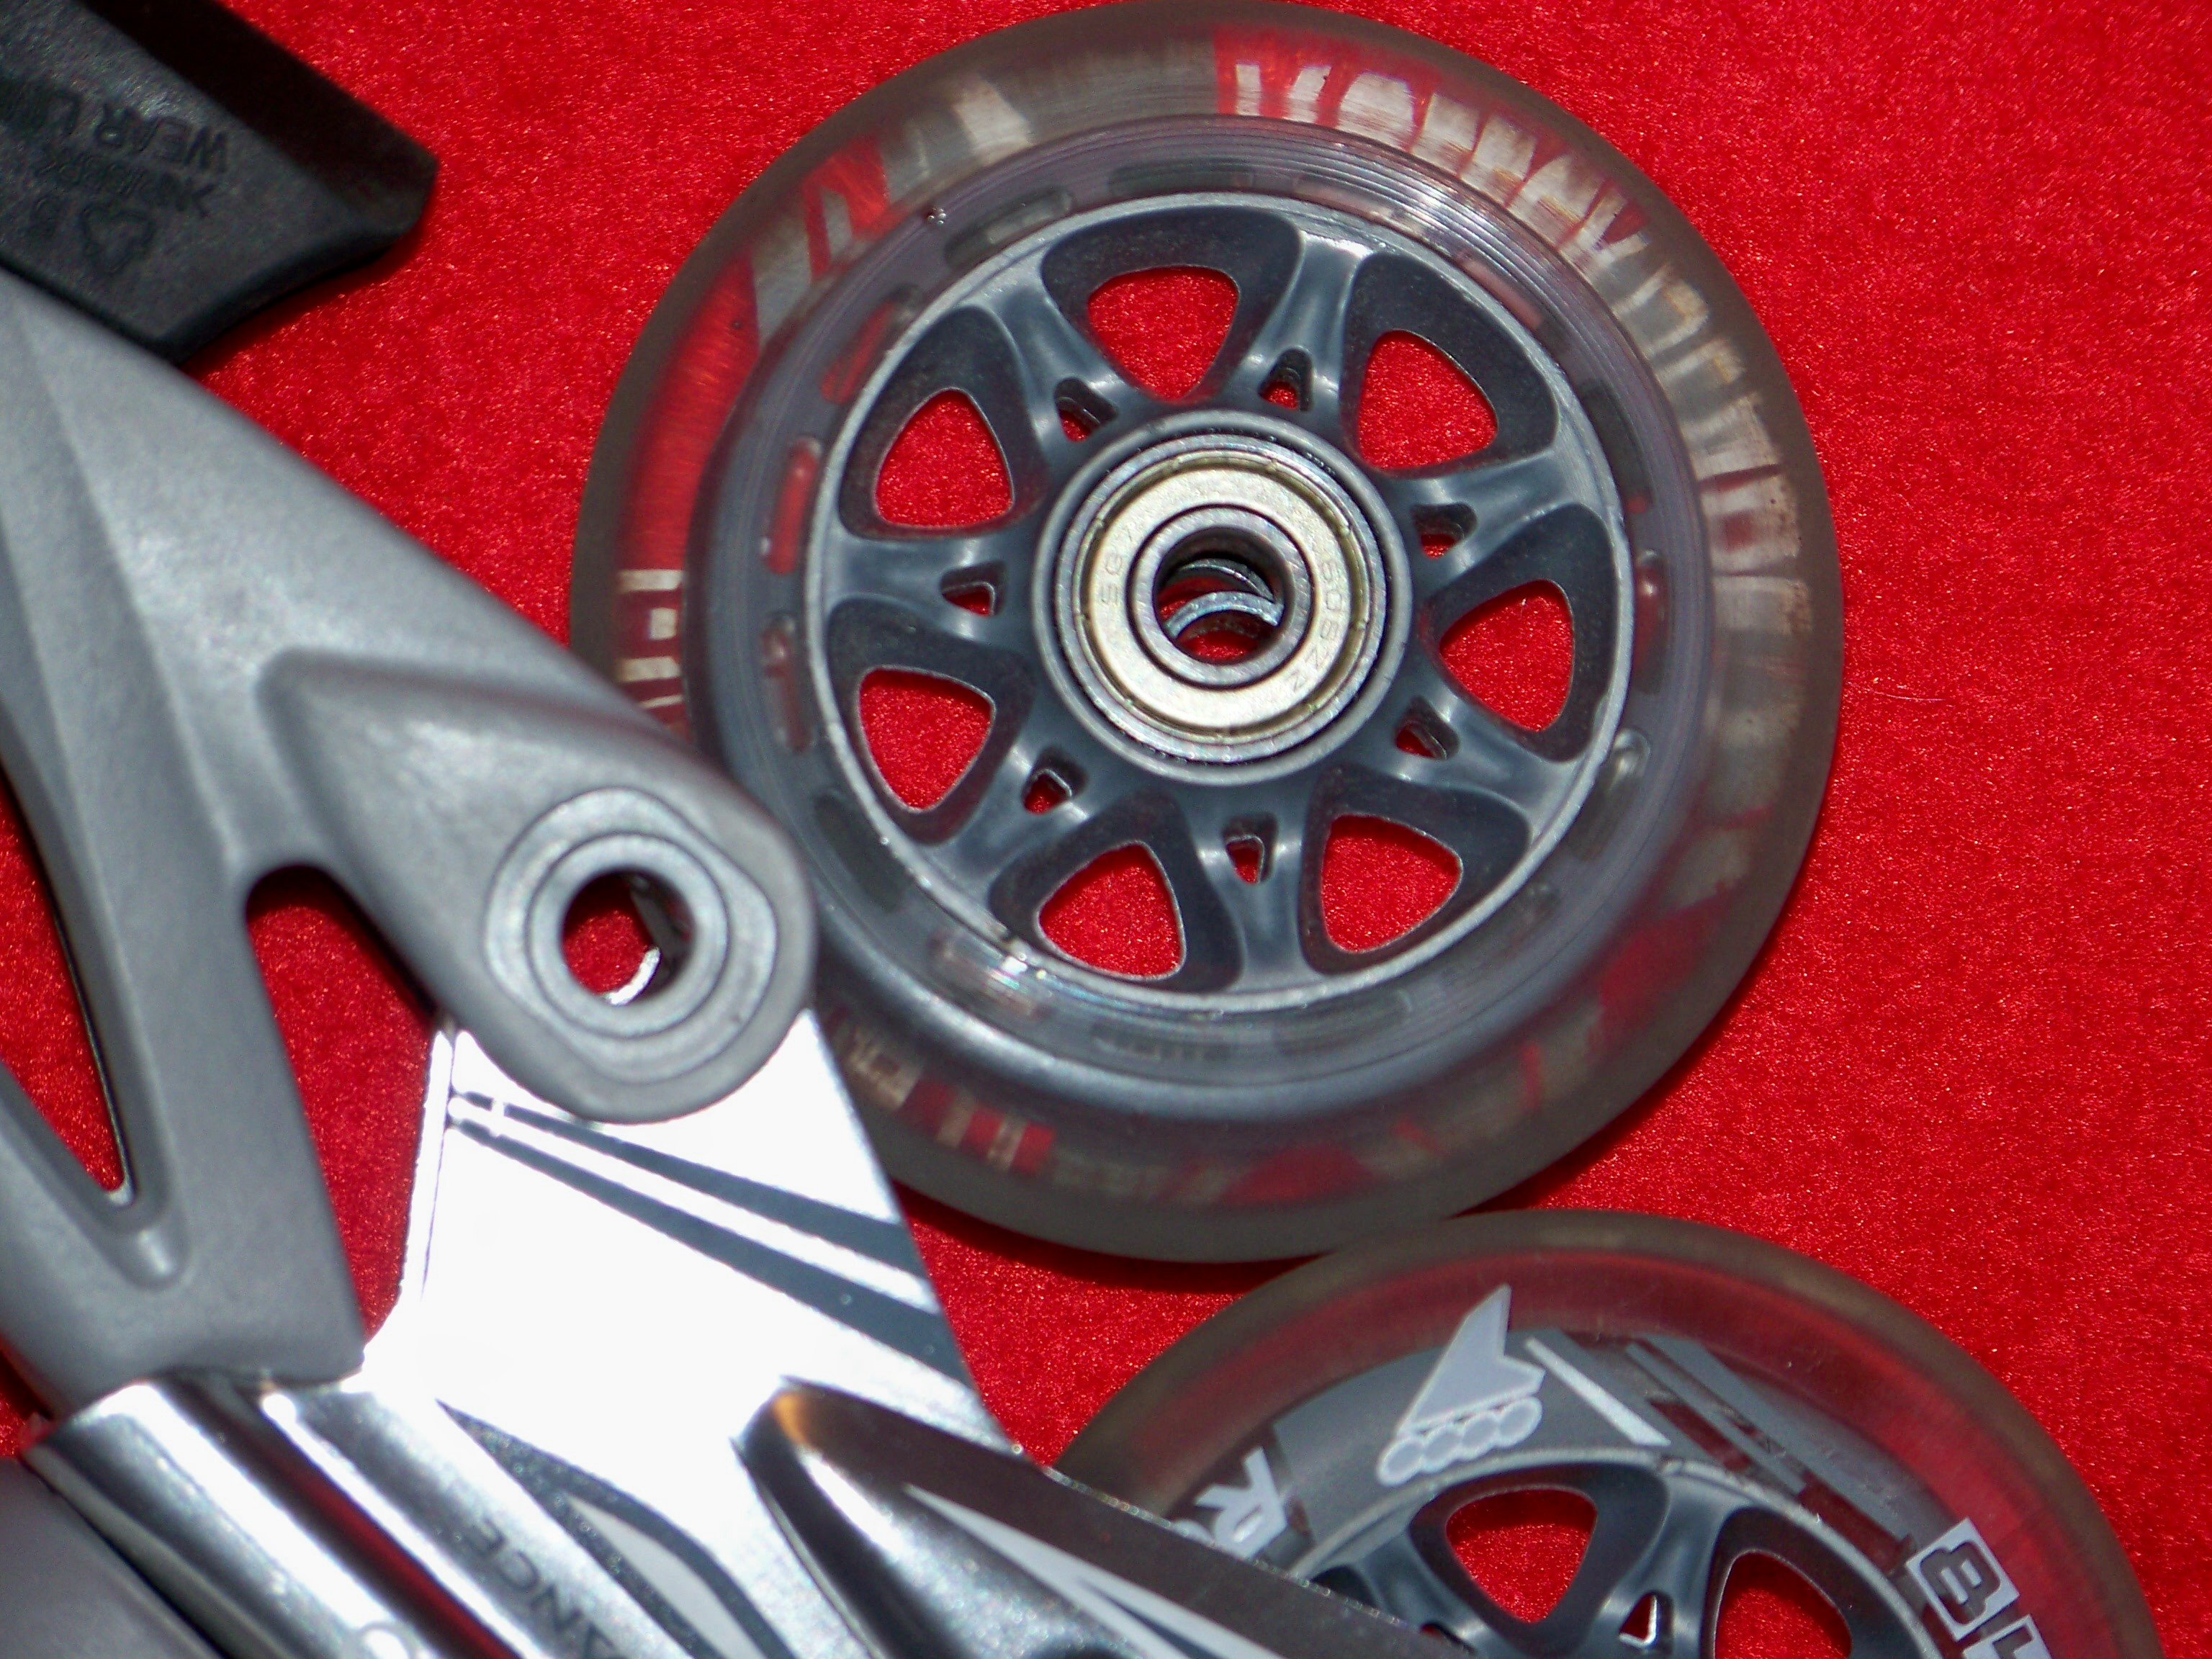 Bearing spacer is visible inside the wheel hub